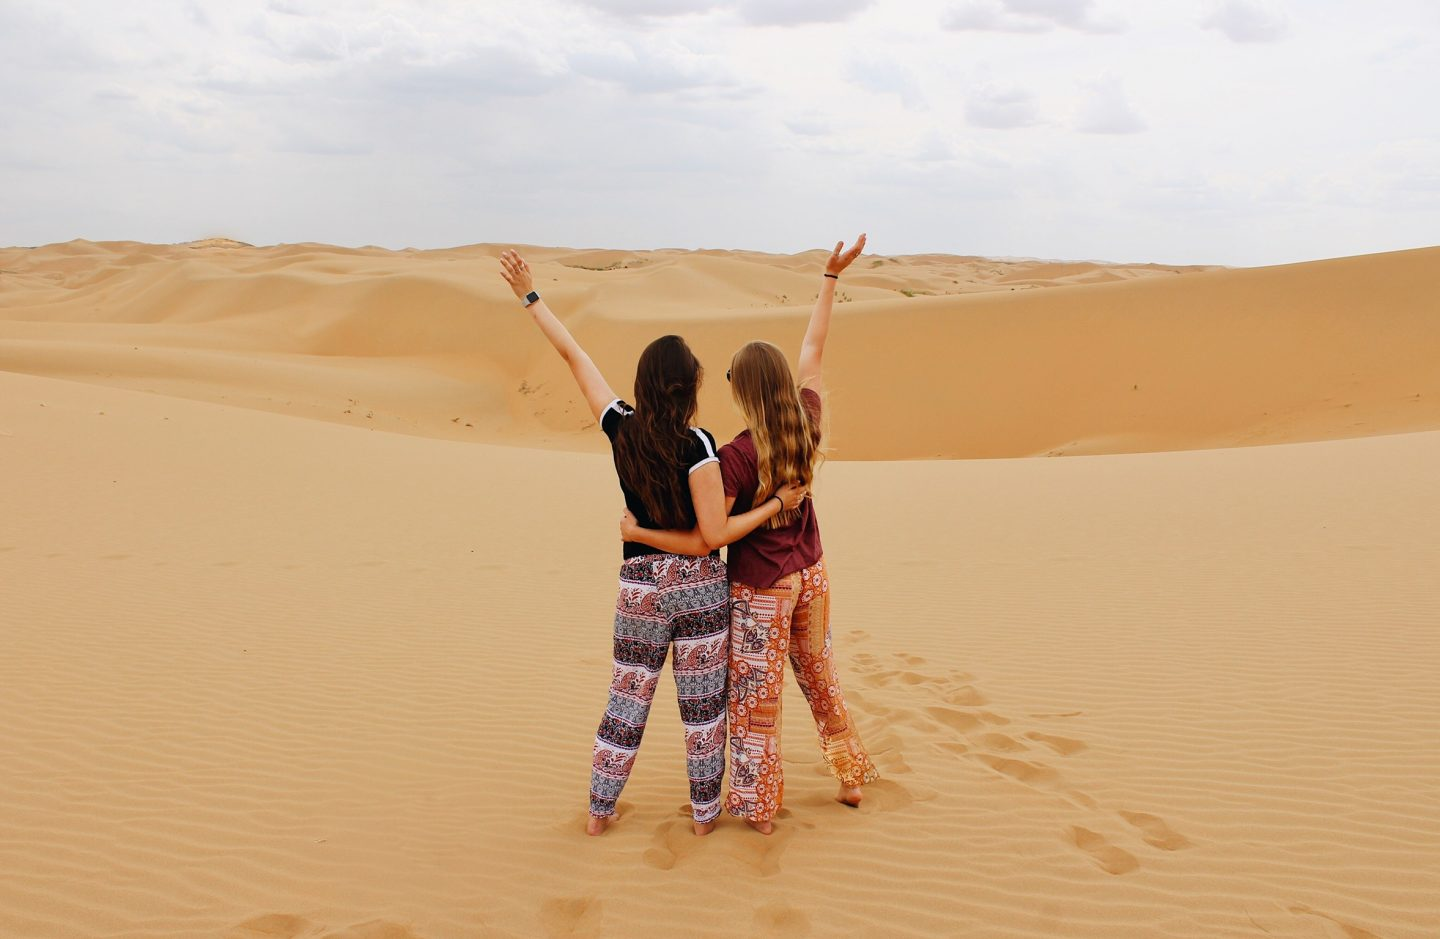 Posing in the dunes in Inner Mongolia, China!